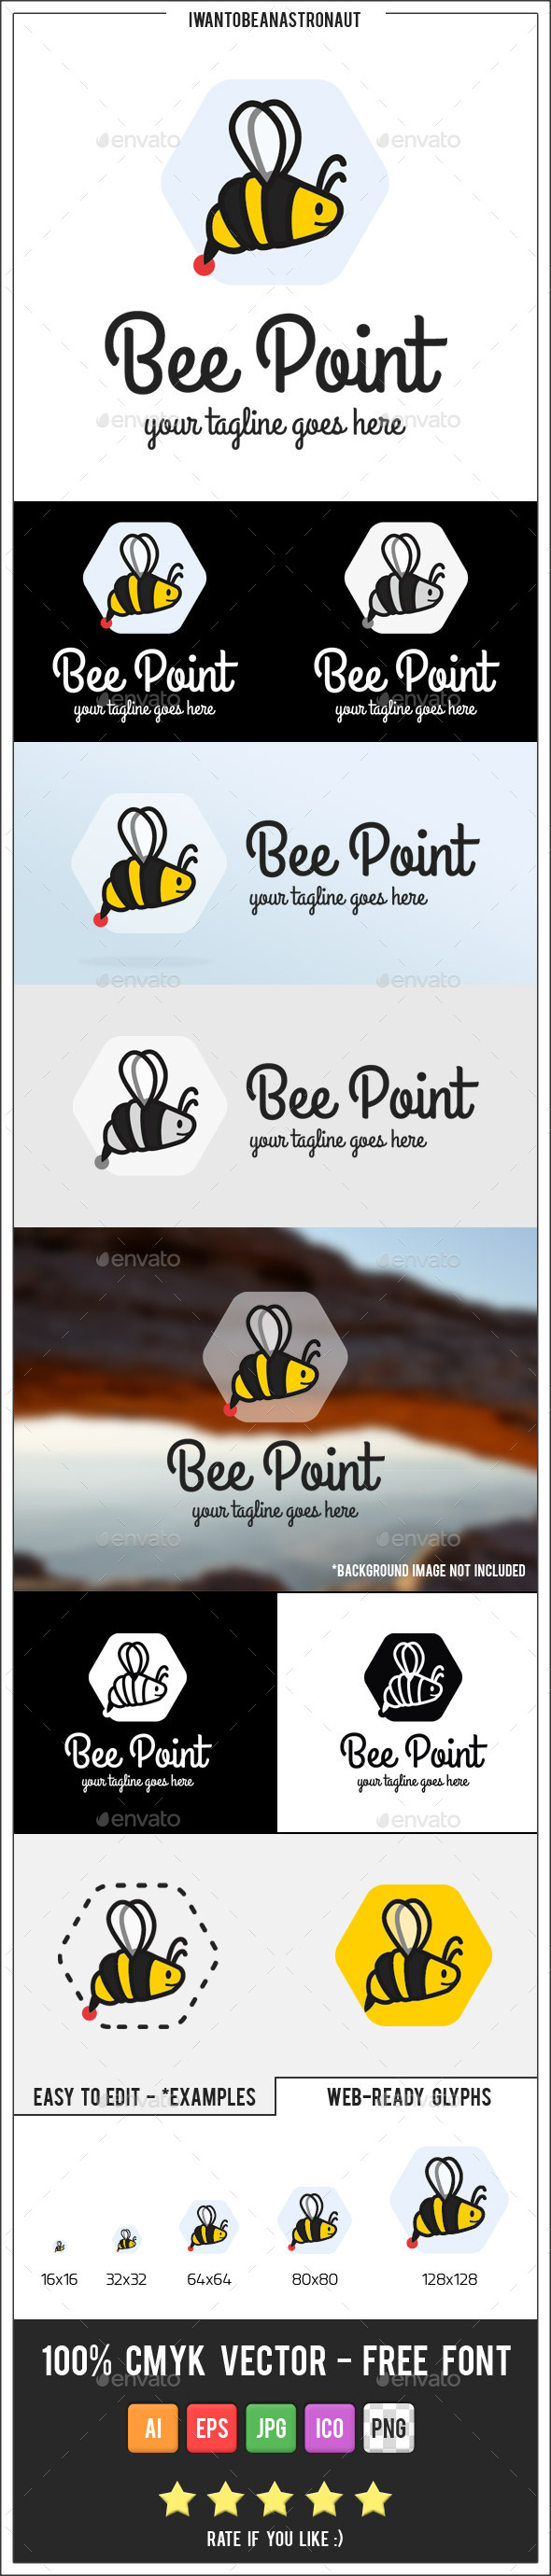 GraphicRiver Bee Point Logo 9843662